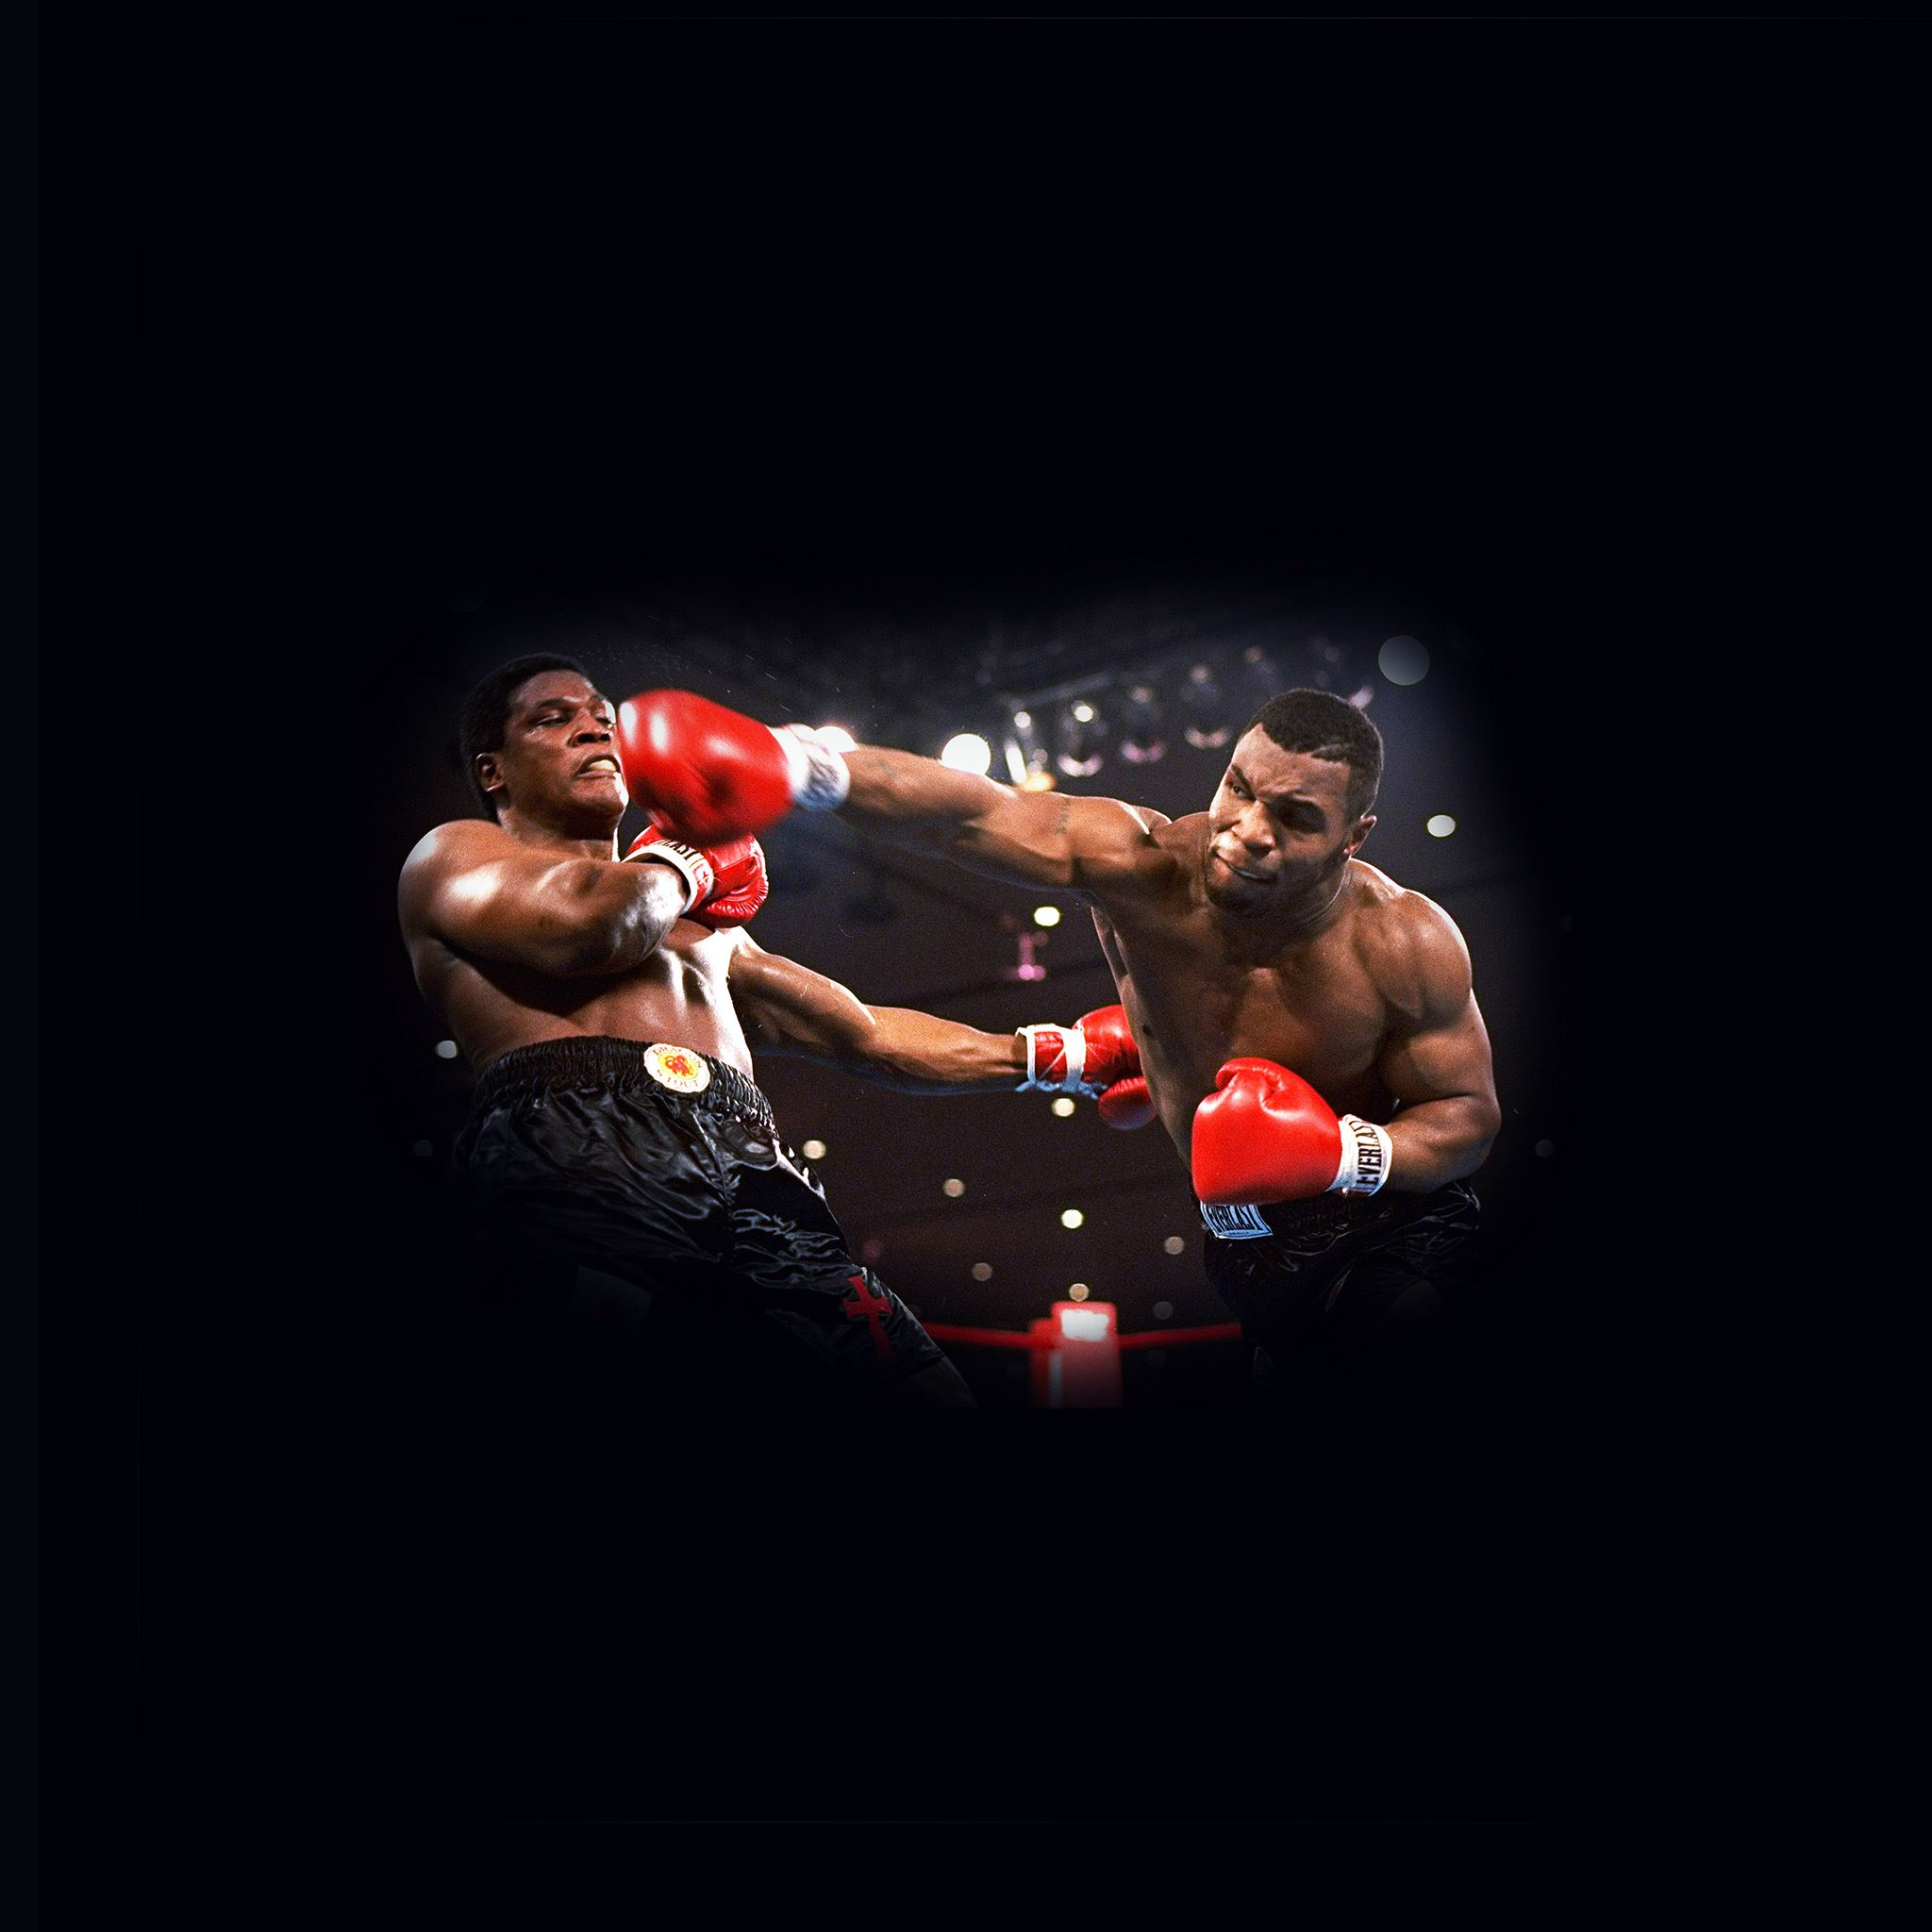 Boxing Mike Tyson Sports Dark iPad Air wallpaper